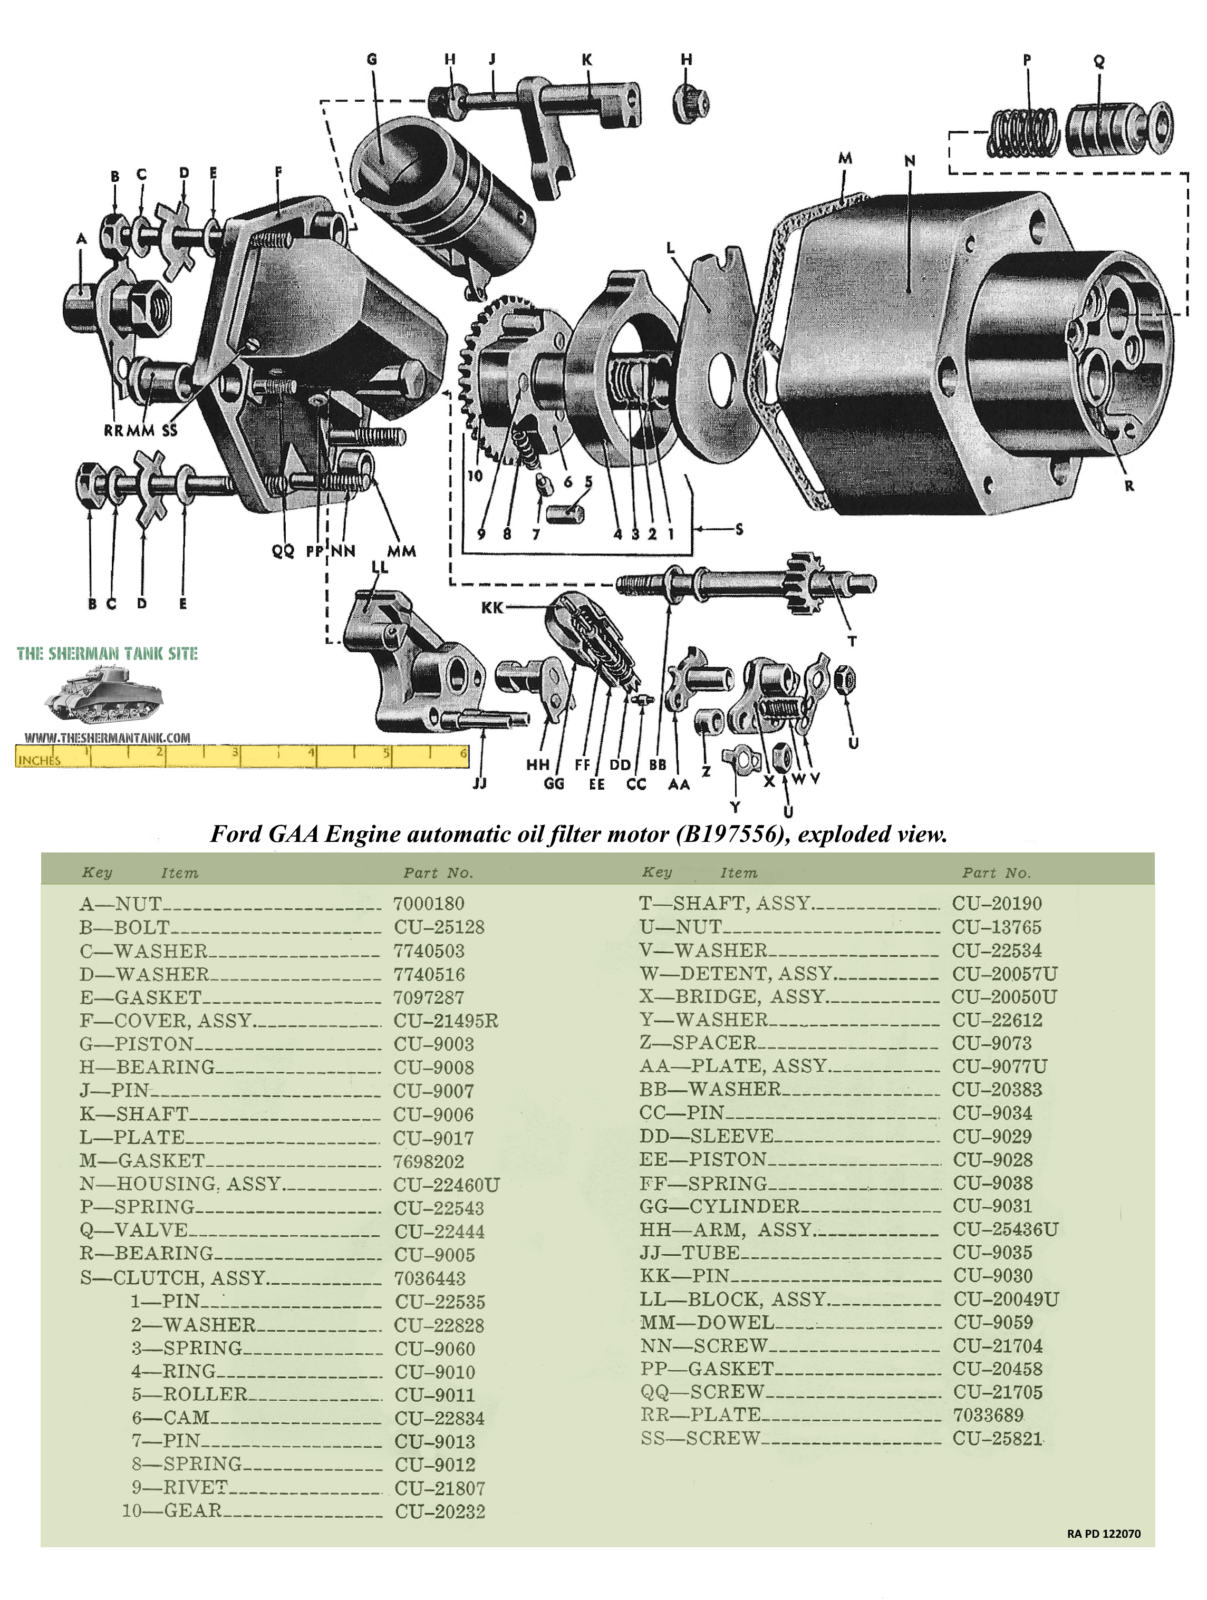 Engine-automatic-oil-filter-motor-explod